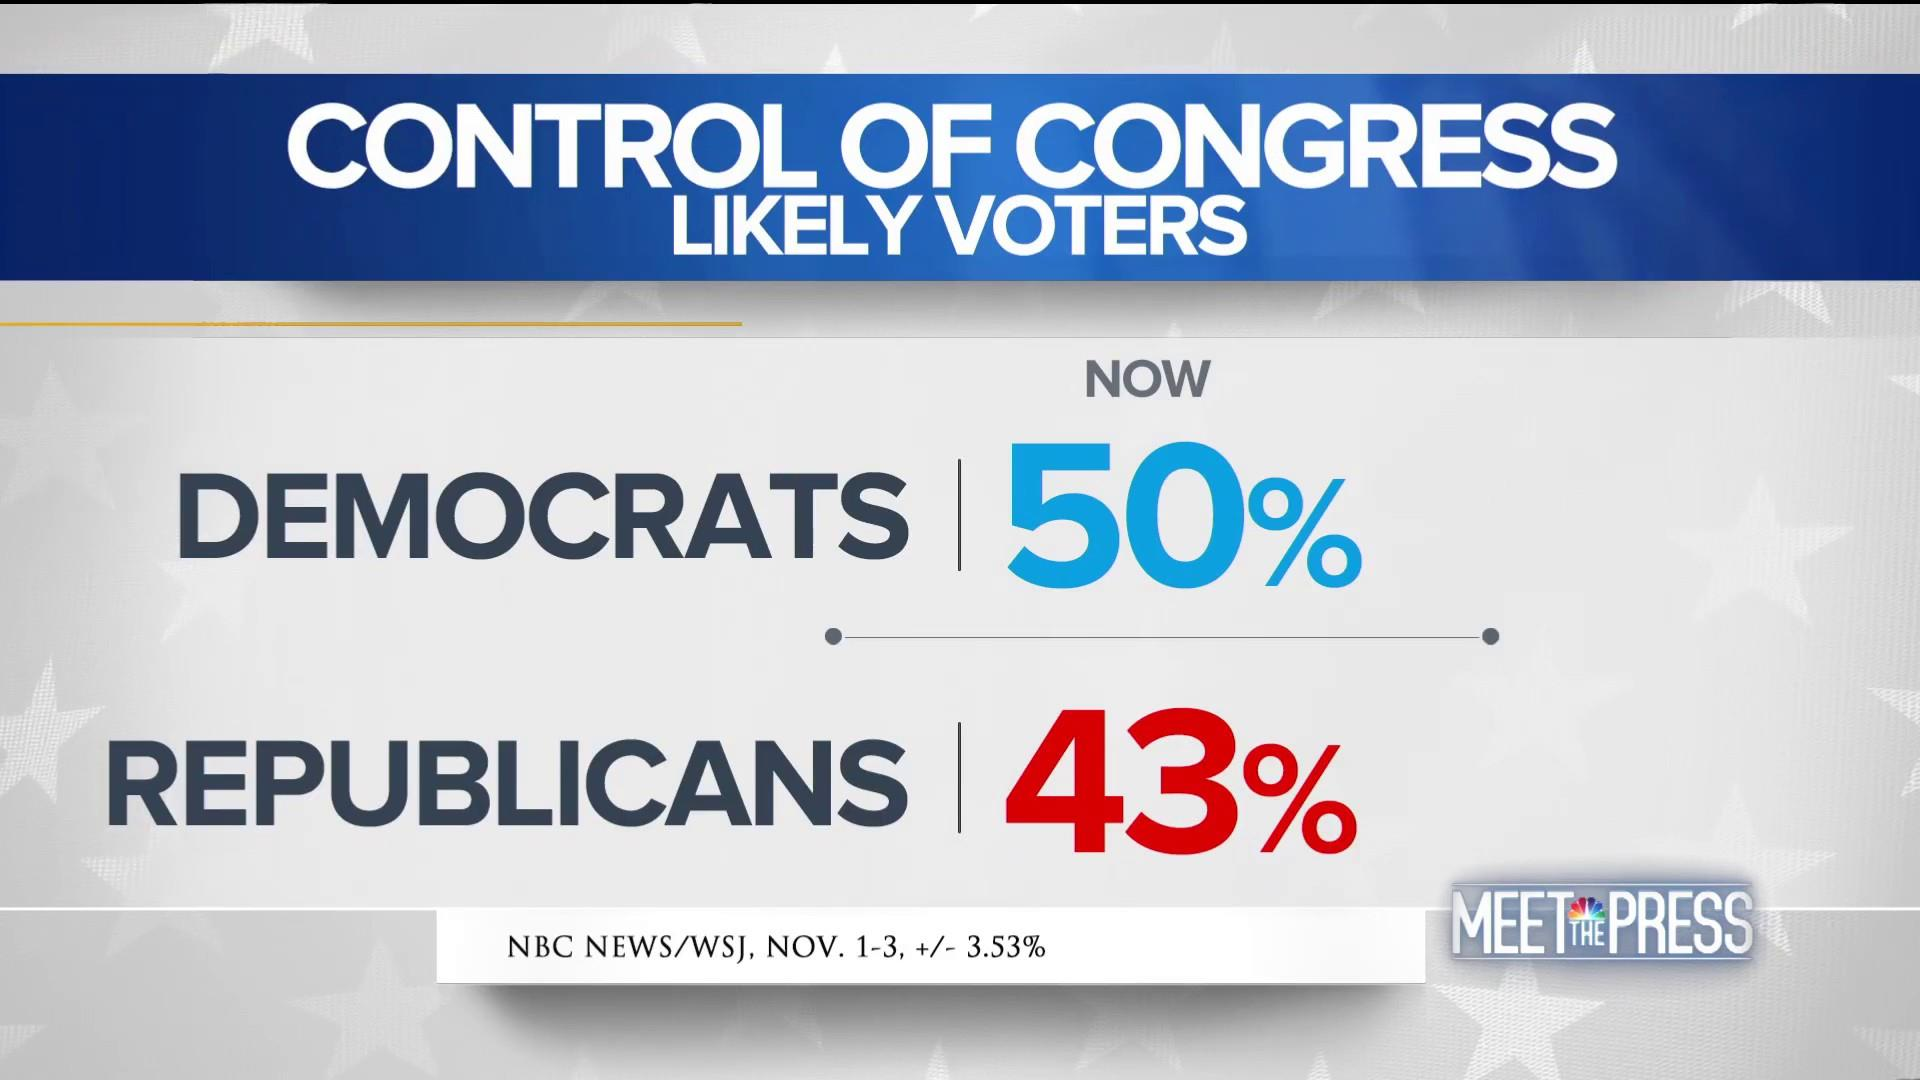 Democrats hold 7-point edge in final national NBC/WSJ poll